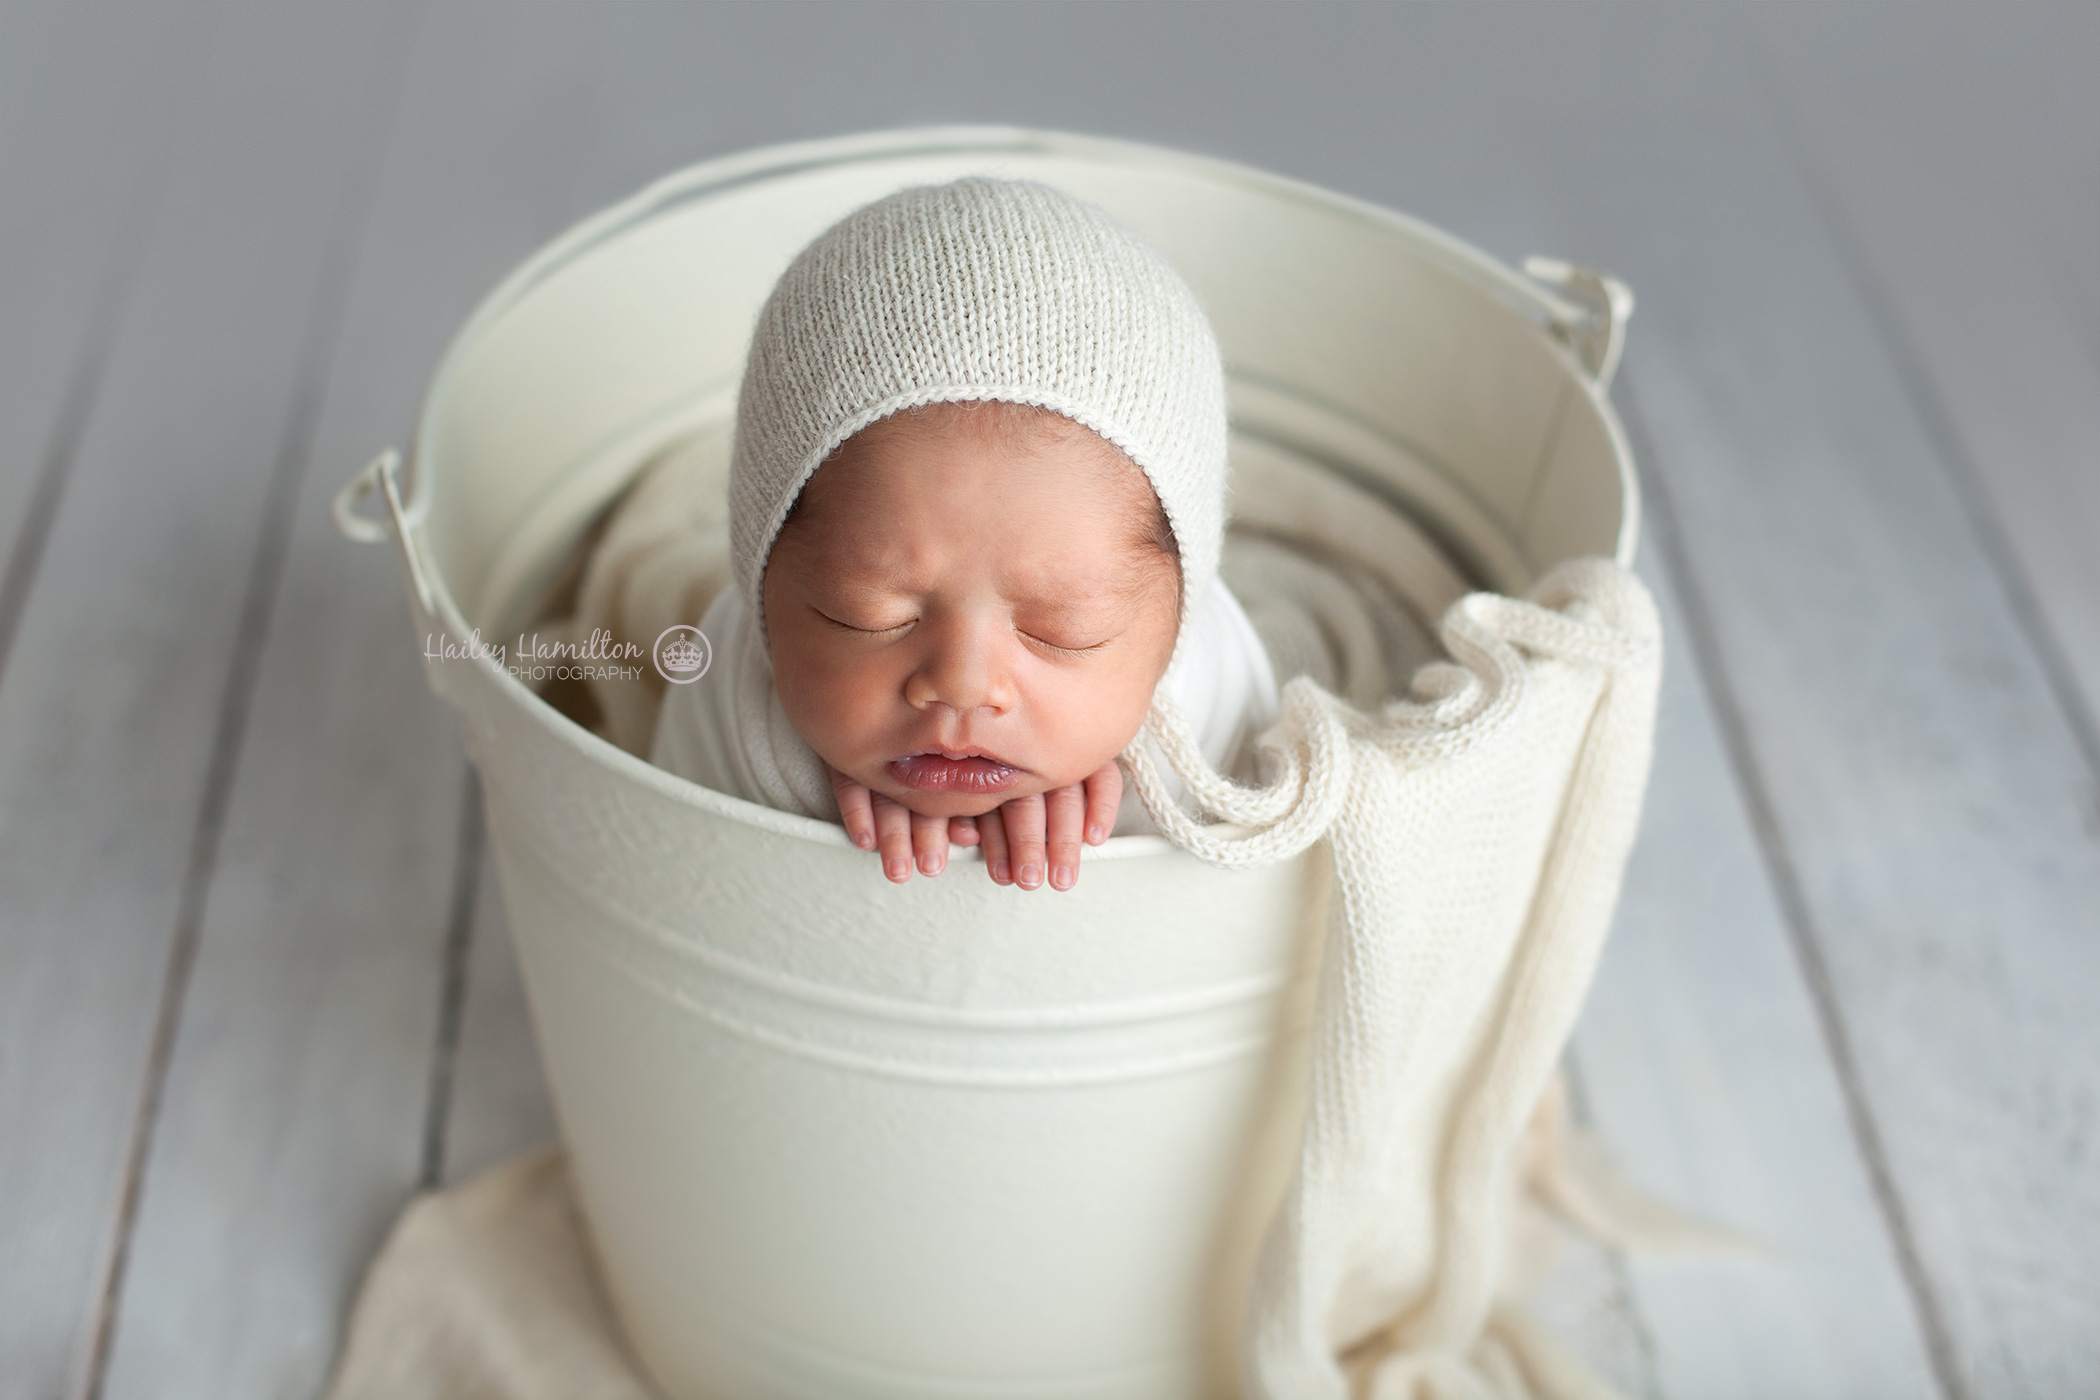 Bucket prop newborn pose photo